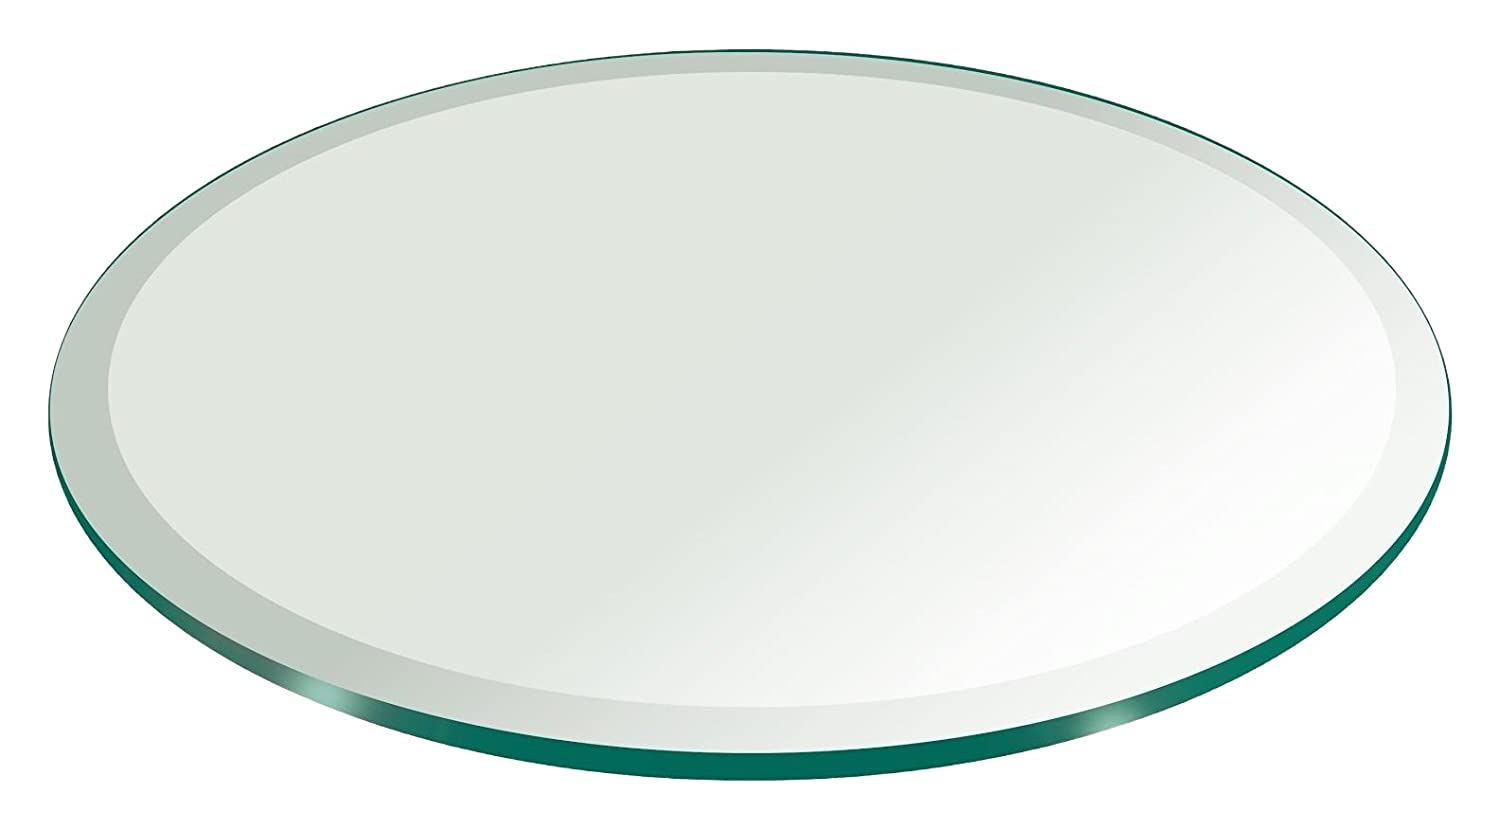 Round glass table tops - Amazon Com 24 Inch Round Glass Table Top 1 4 Thick Tempered Beveled Edge By Fab Glass And Mirror Home Kitchen